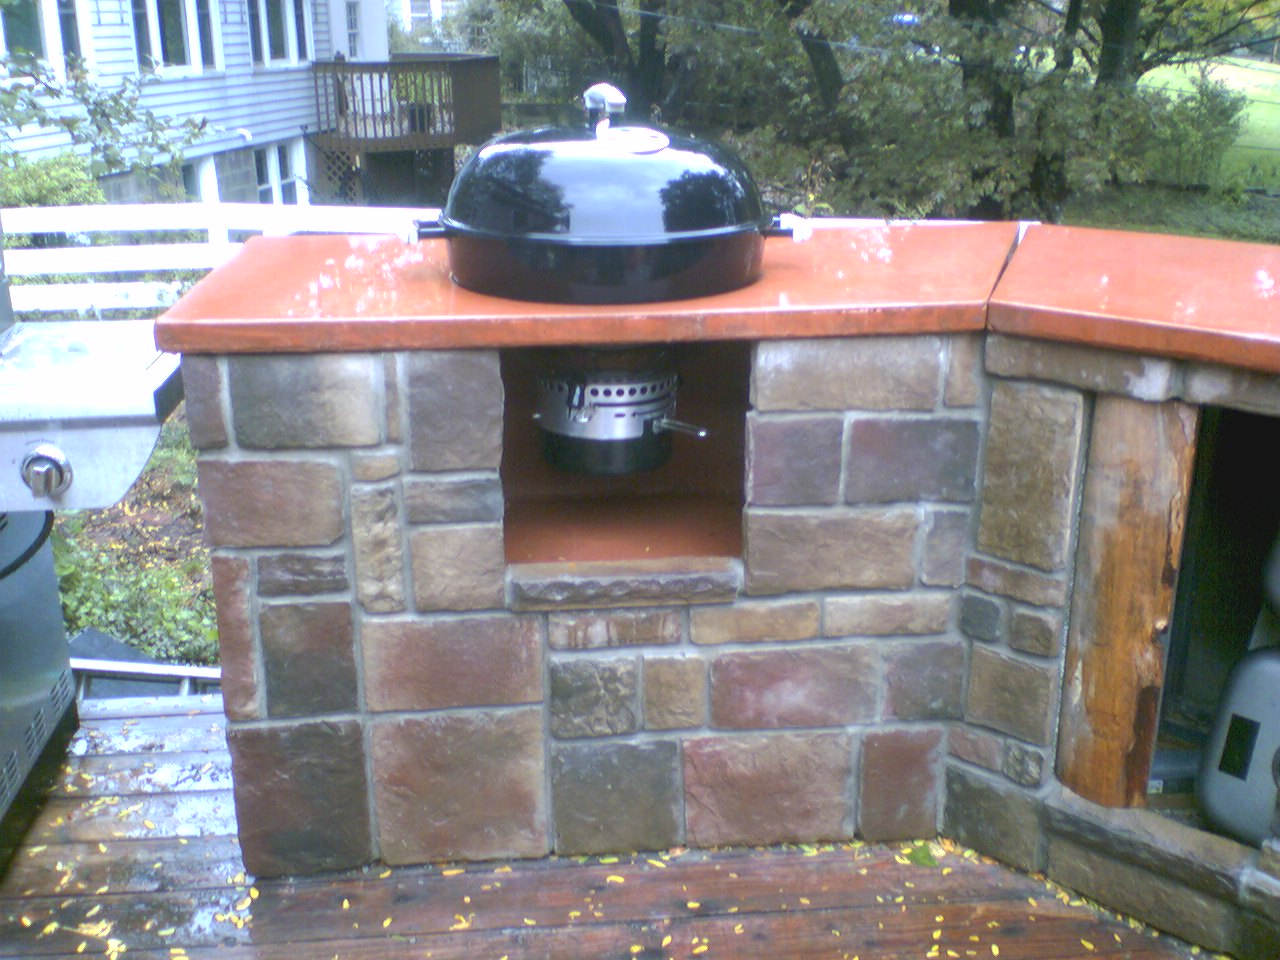 Mounting a weber charcoal kettle in a counter - Custom Built ...